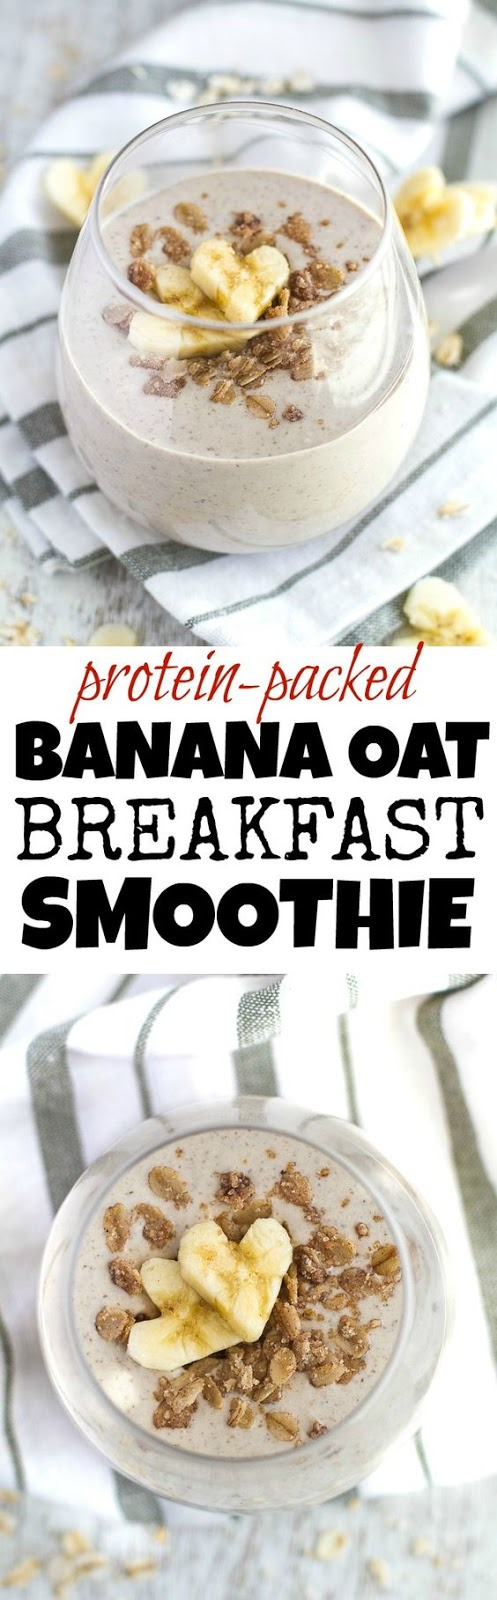 Banana Oat Breakfast Smoothie